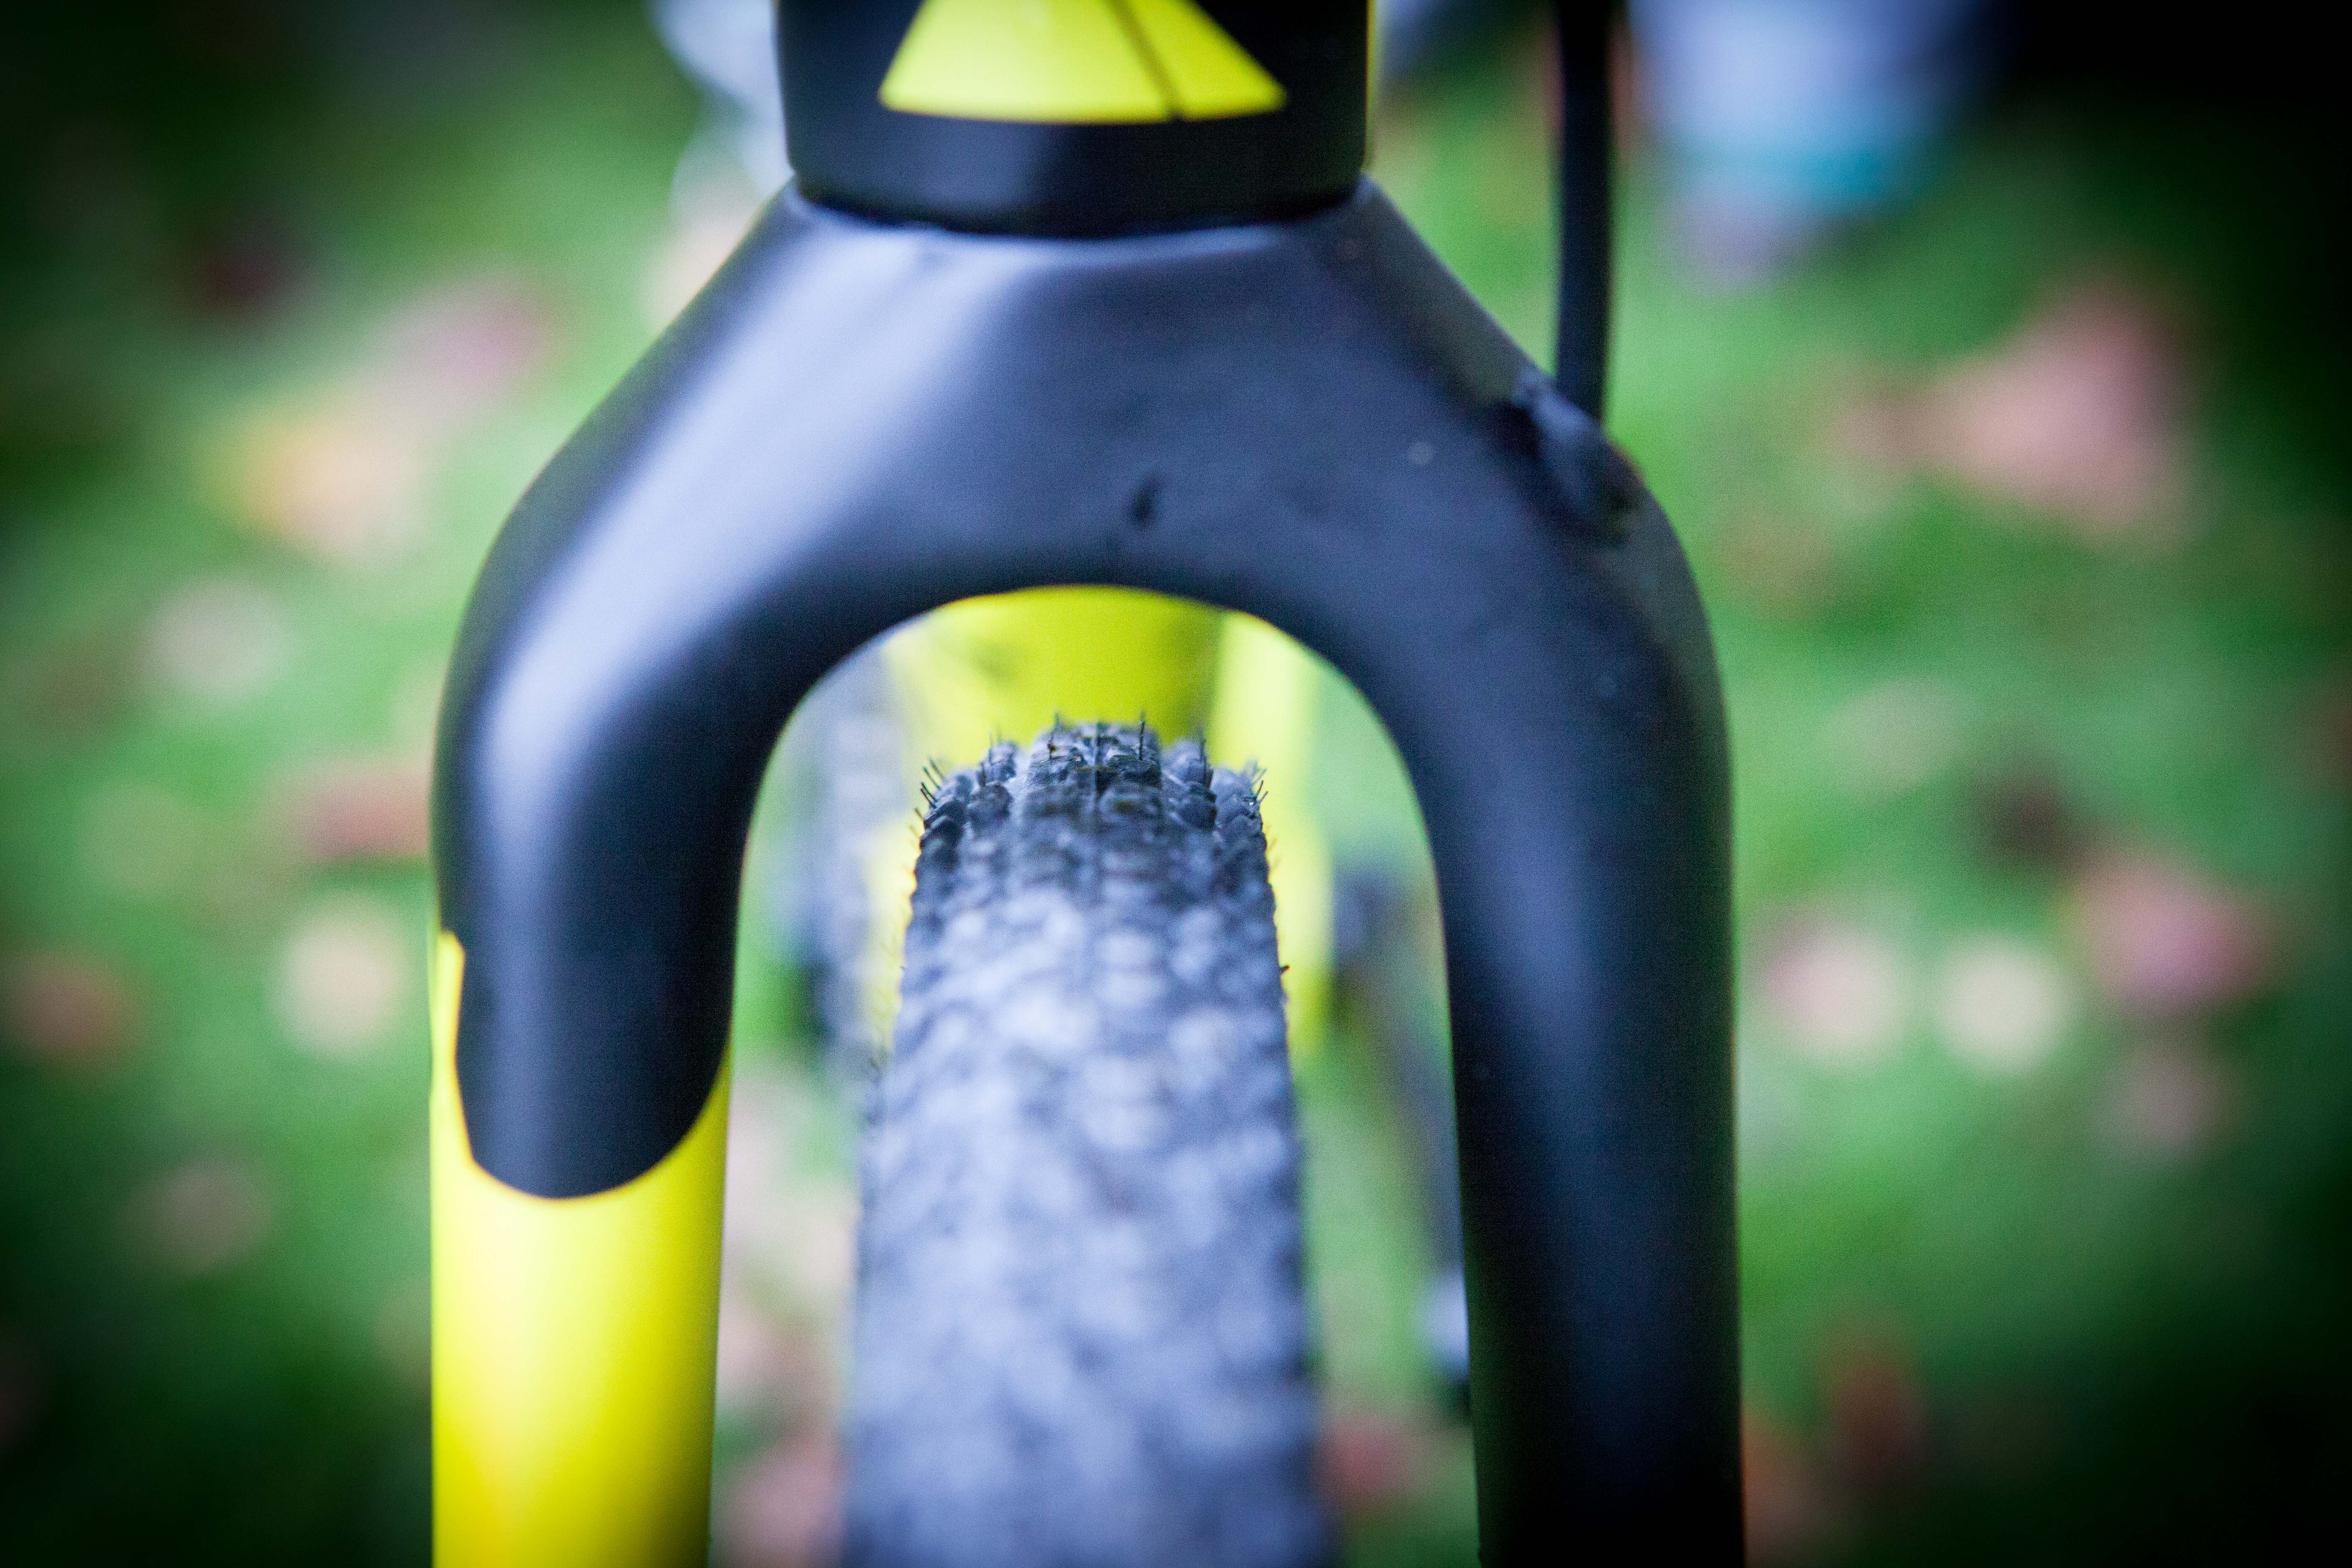 First Look: Canyon Inflite CF SLX 8 0 Pro Race - GritCX